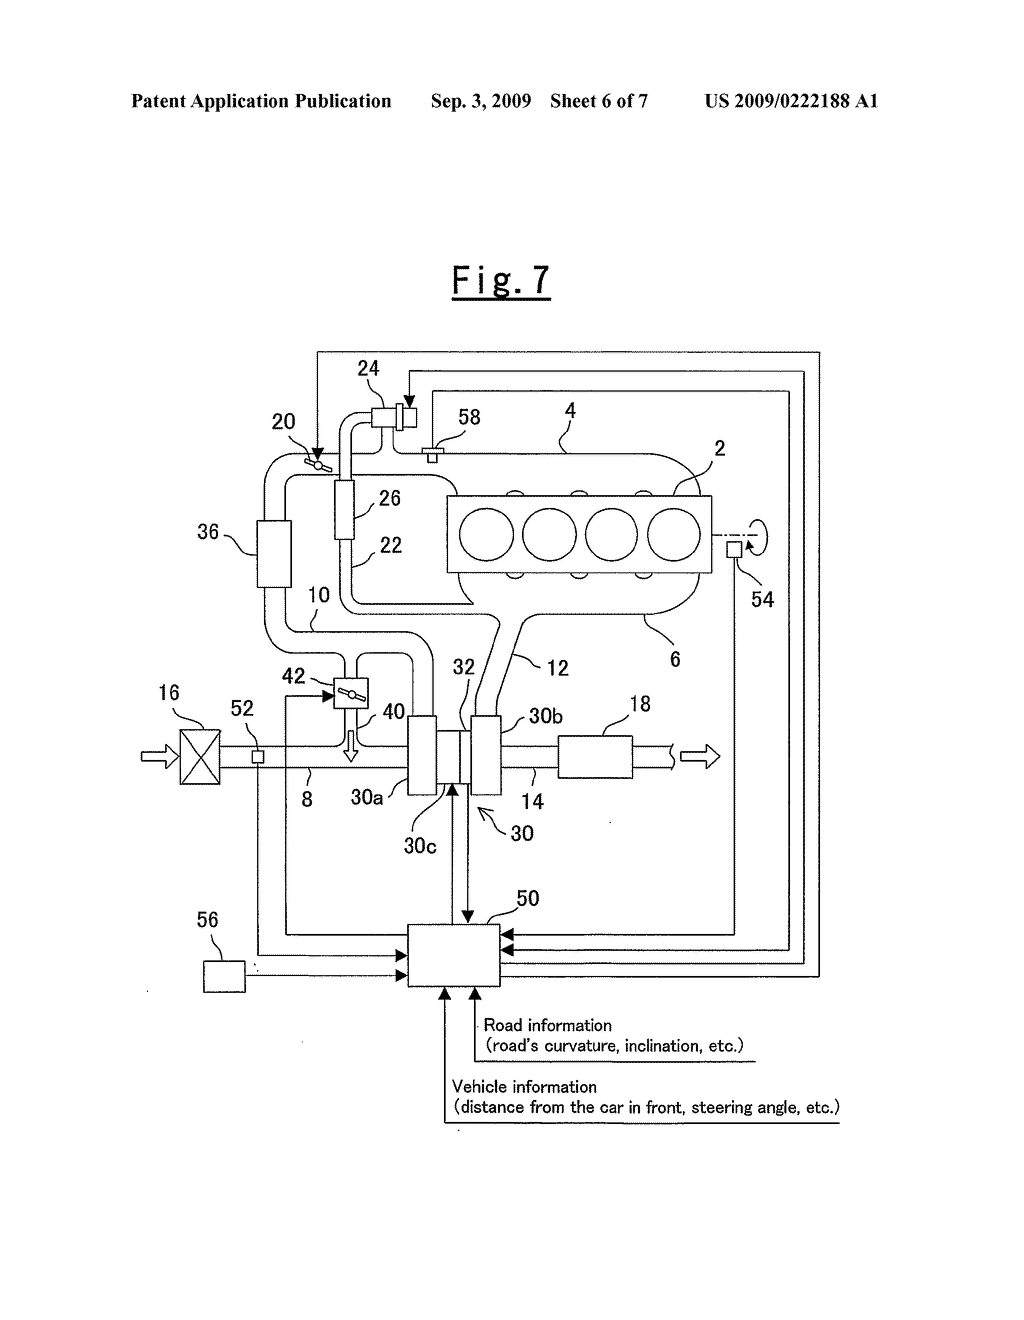 hight resolution of control apparatus for internal combustion engine having motor driven supercharger diagram schematic and image 07